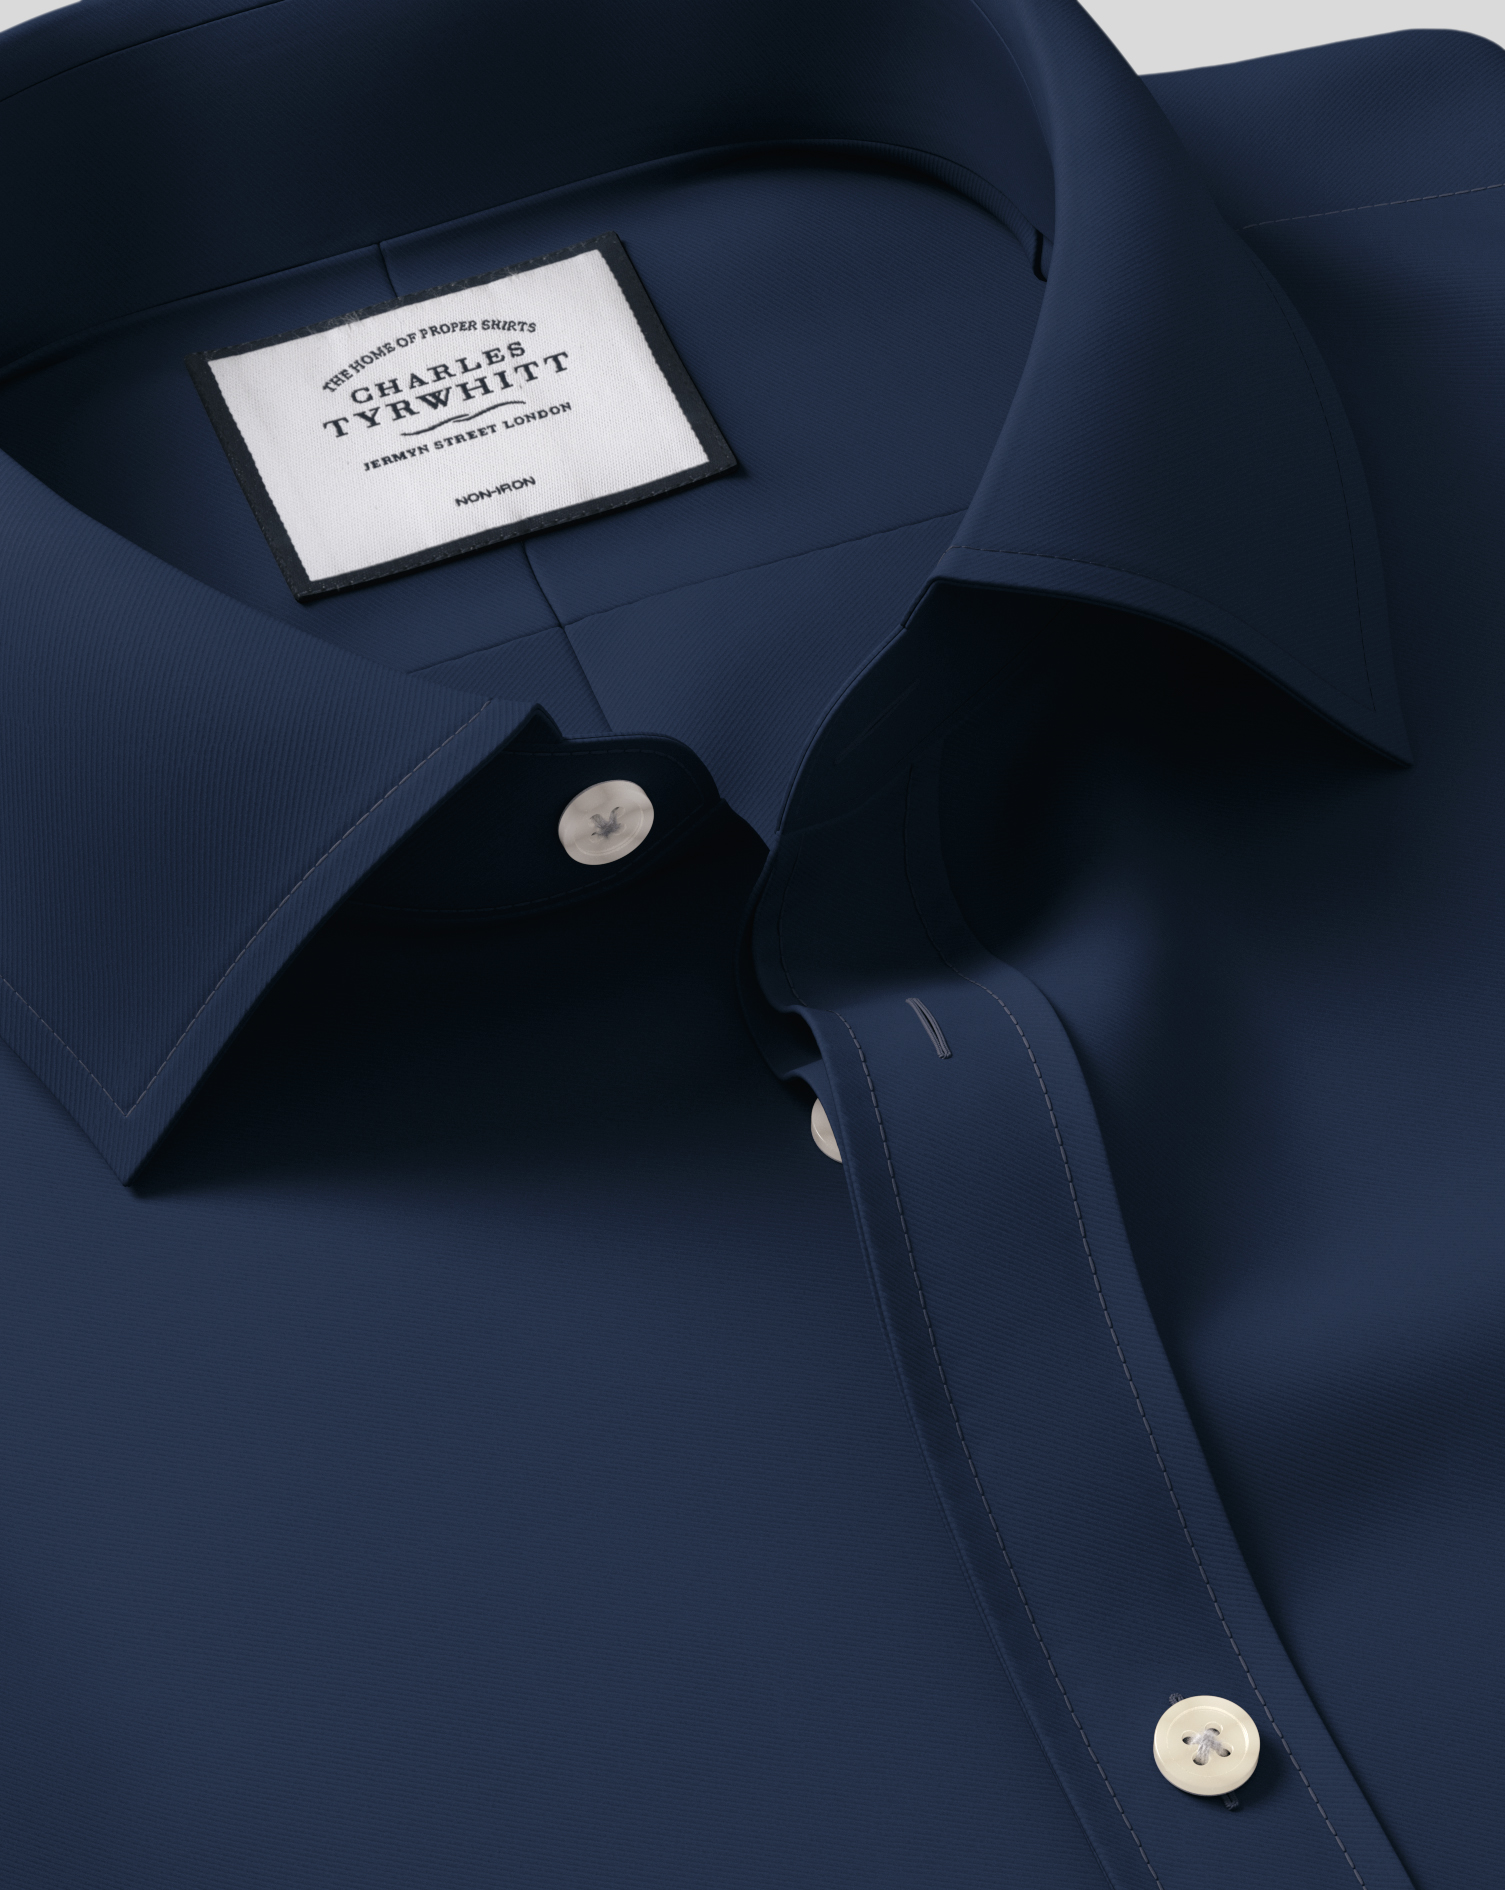 Classic Fit Navy Non-Iron Twill Cotton Formal Shirt Double Cuff Size 17/37 by Charles Tyrwhitt